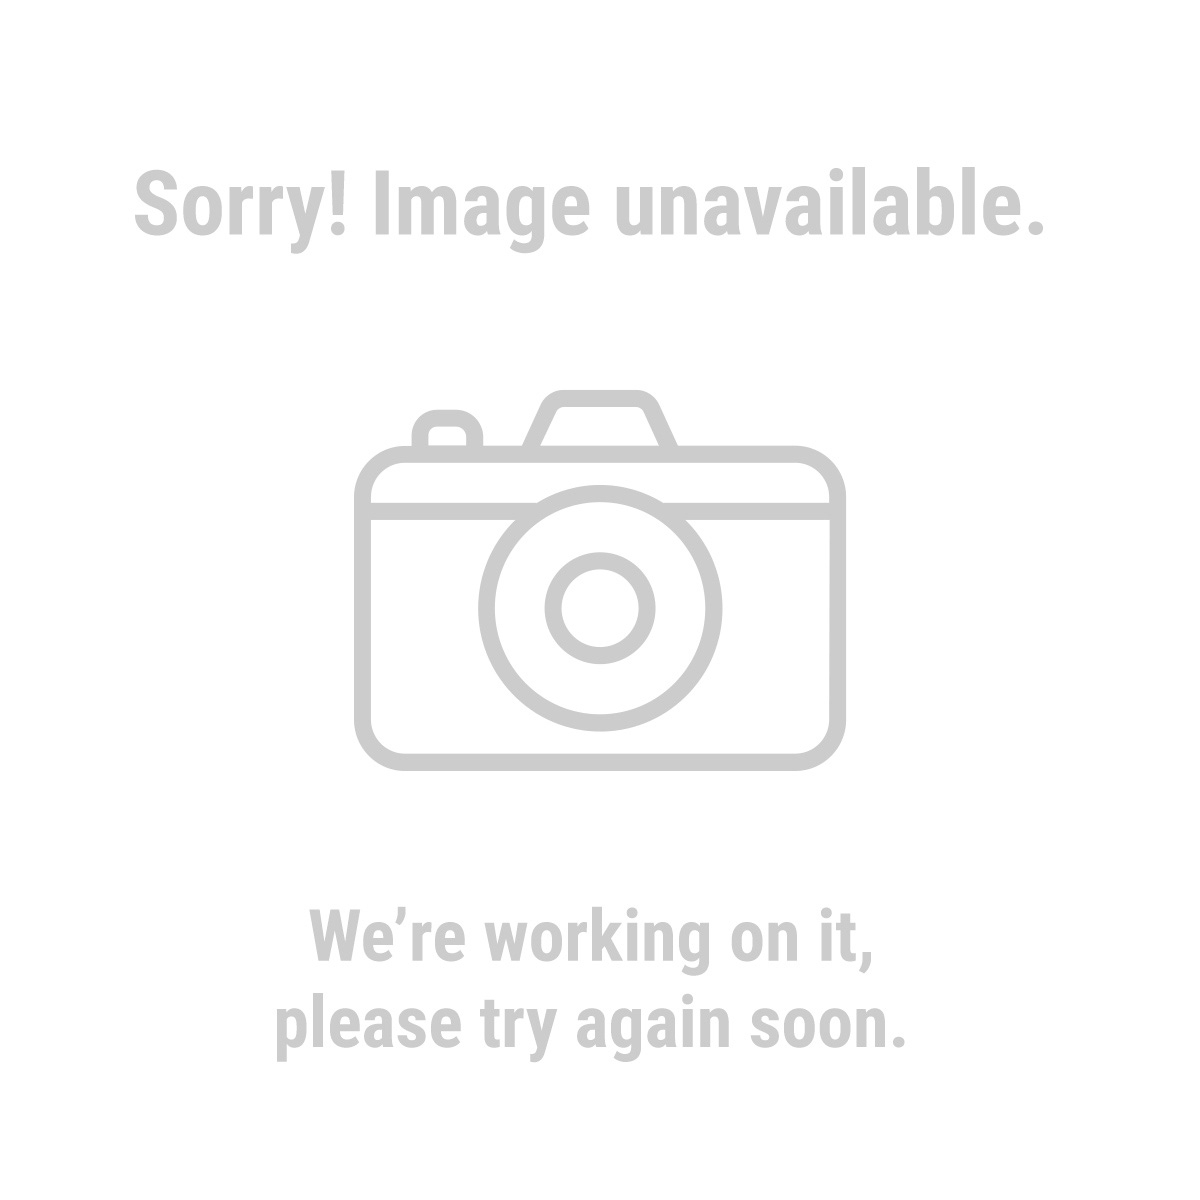 Pittsburgh 62139 6 in. Industrial C-Clamp